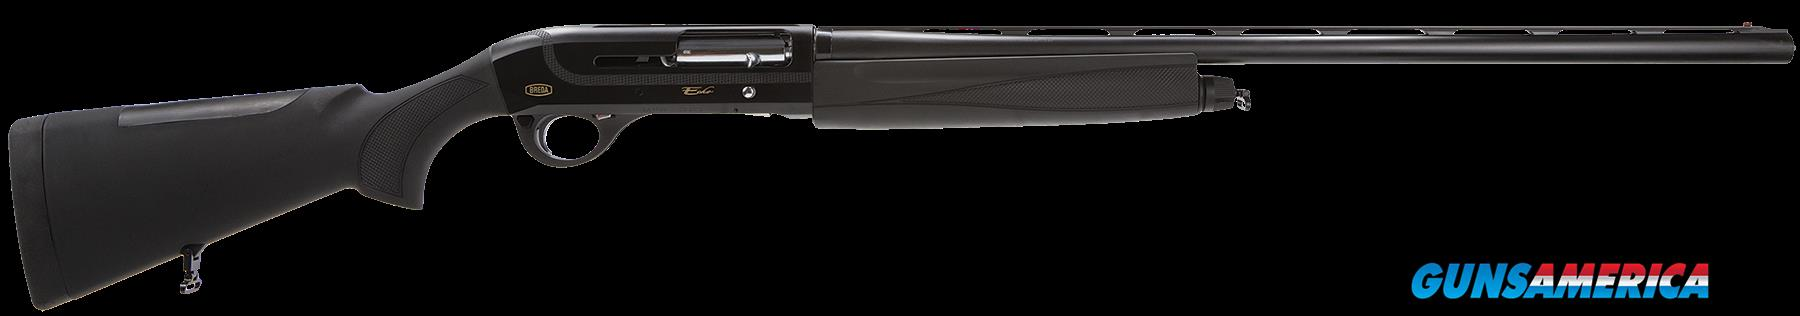 "Breda/Dickinson BRE47 Echo Semi-Automatic 12 Gauge 28"" 3"" Blk Synthetic Stk Blk Aluminum Alloy Rcvr  Guns > Shotguns > B Misc Shotguns"